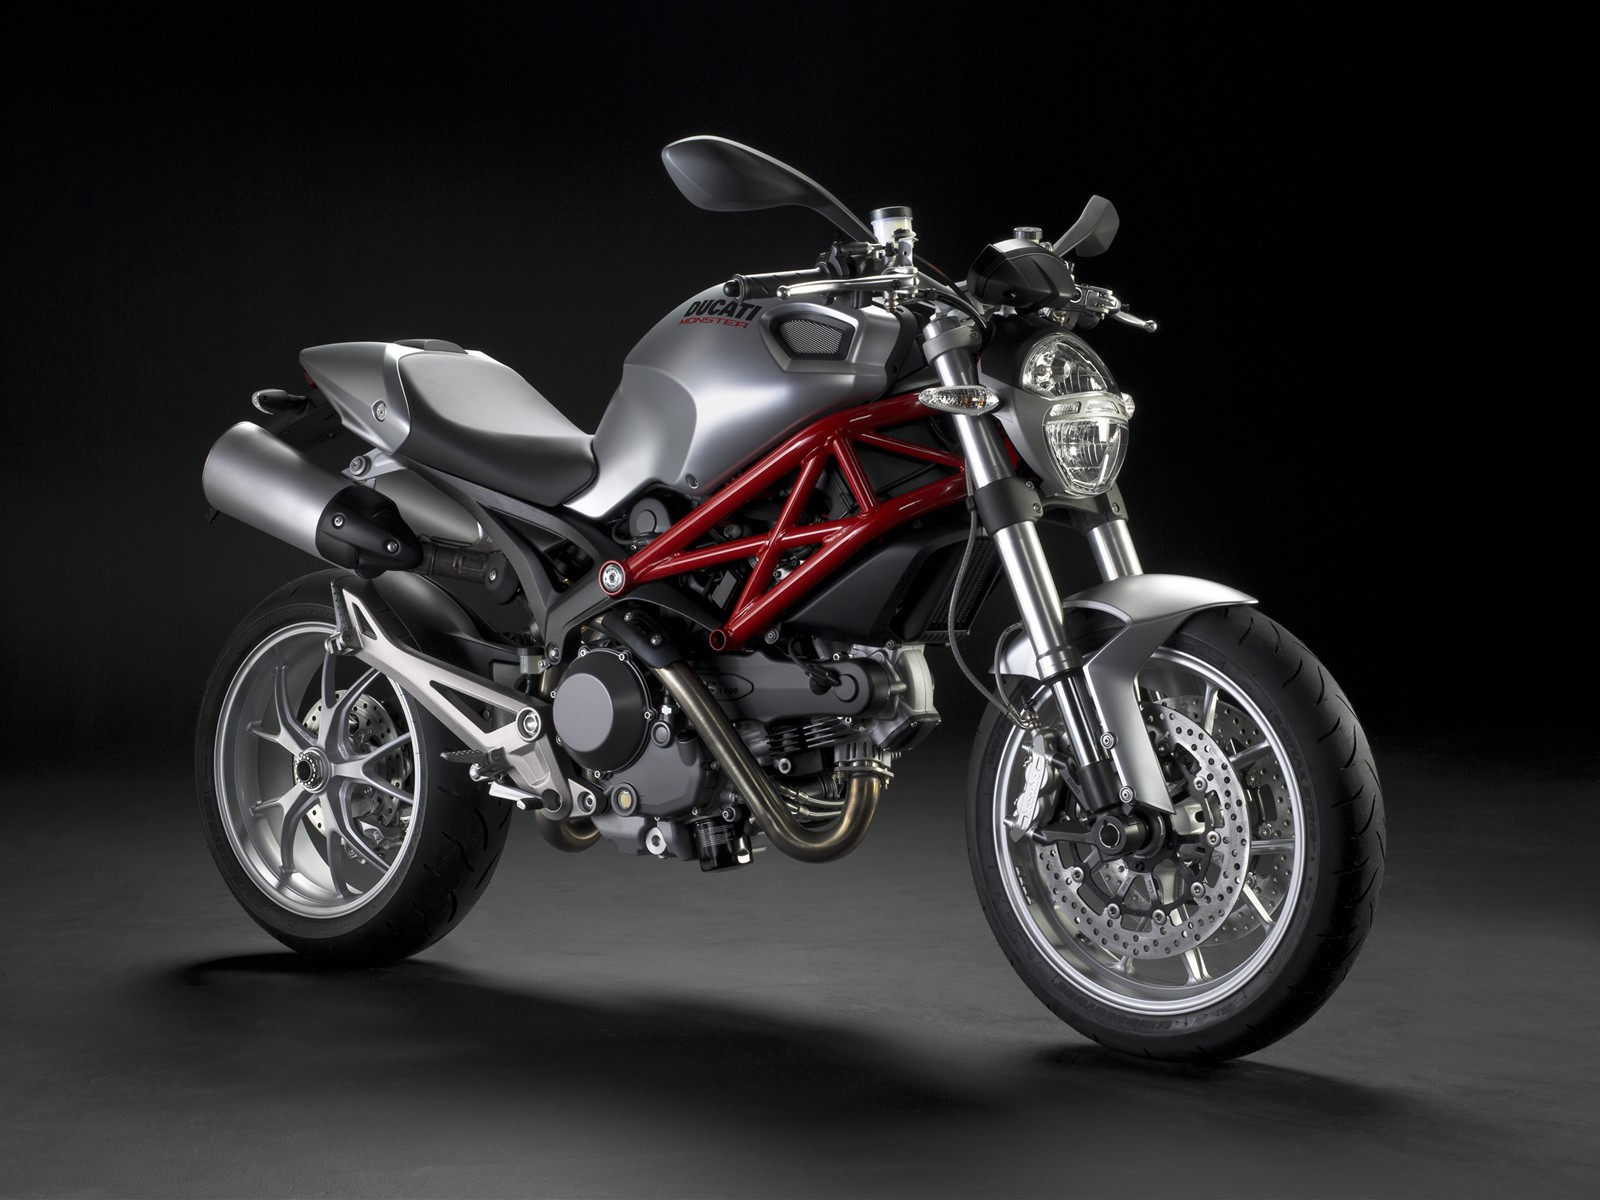 Ducati Monster 1100 1728.02 Kb